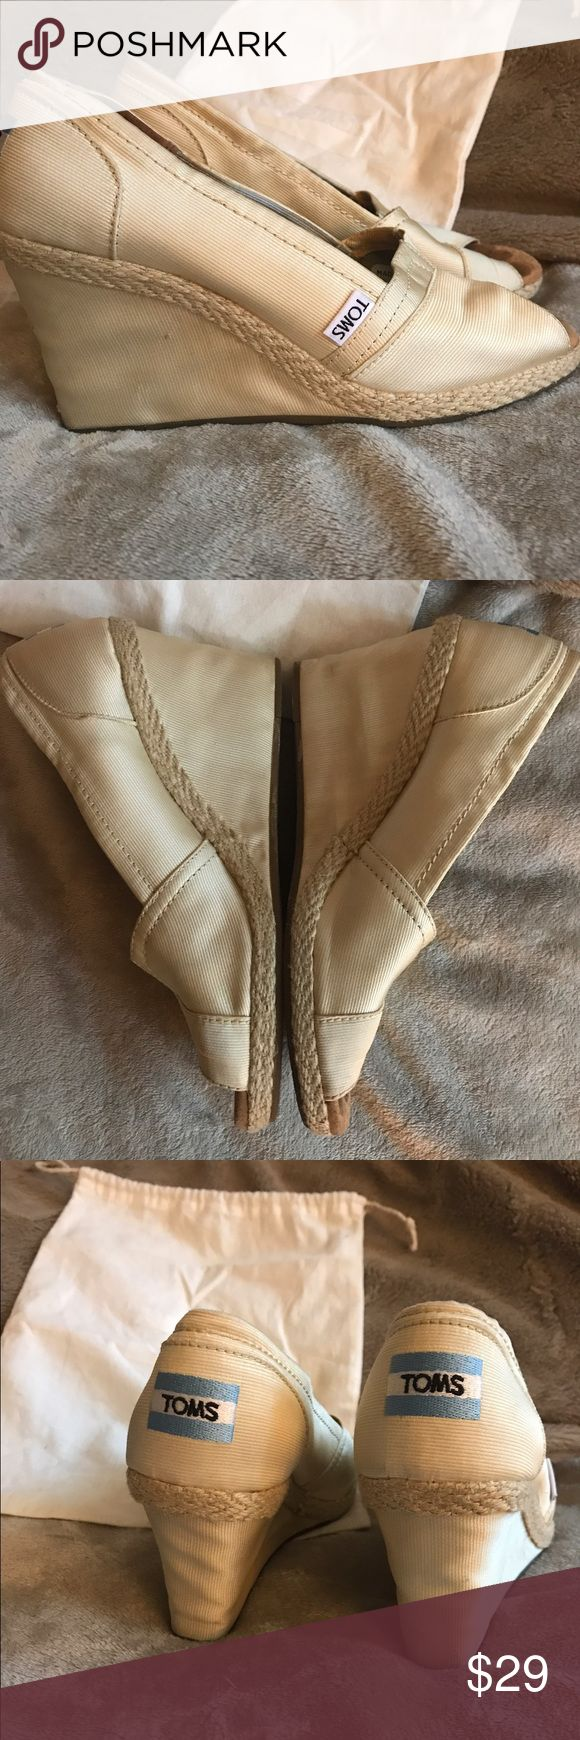 Toms Stella Peep Toe Wedges Size 8 Toms Stella Peep Toe Wedges Size 8. Satiny champagne colored fabric with braided details. These shoes are well loved but in very good condition! TOMS Shoes Wedges